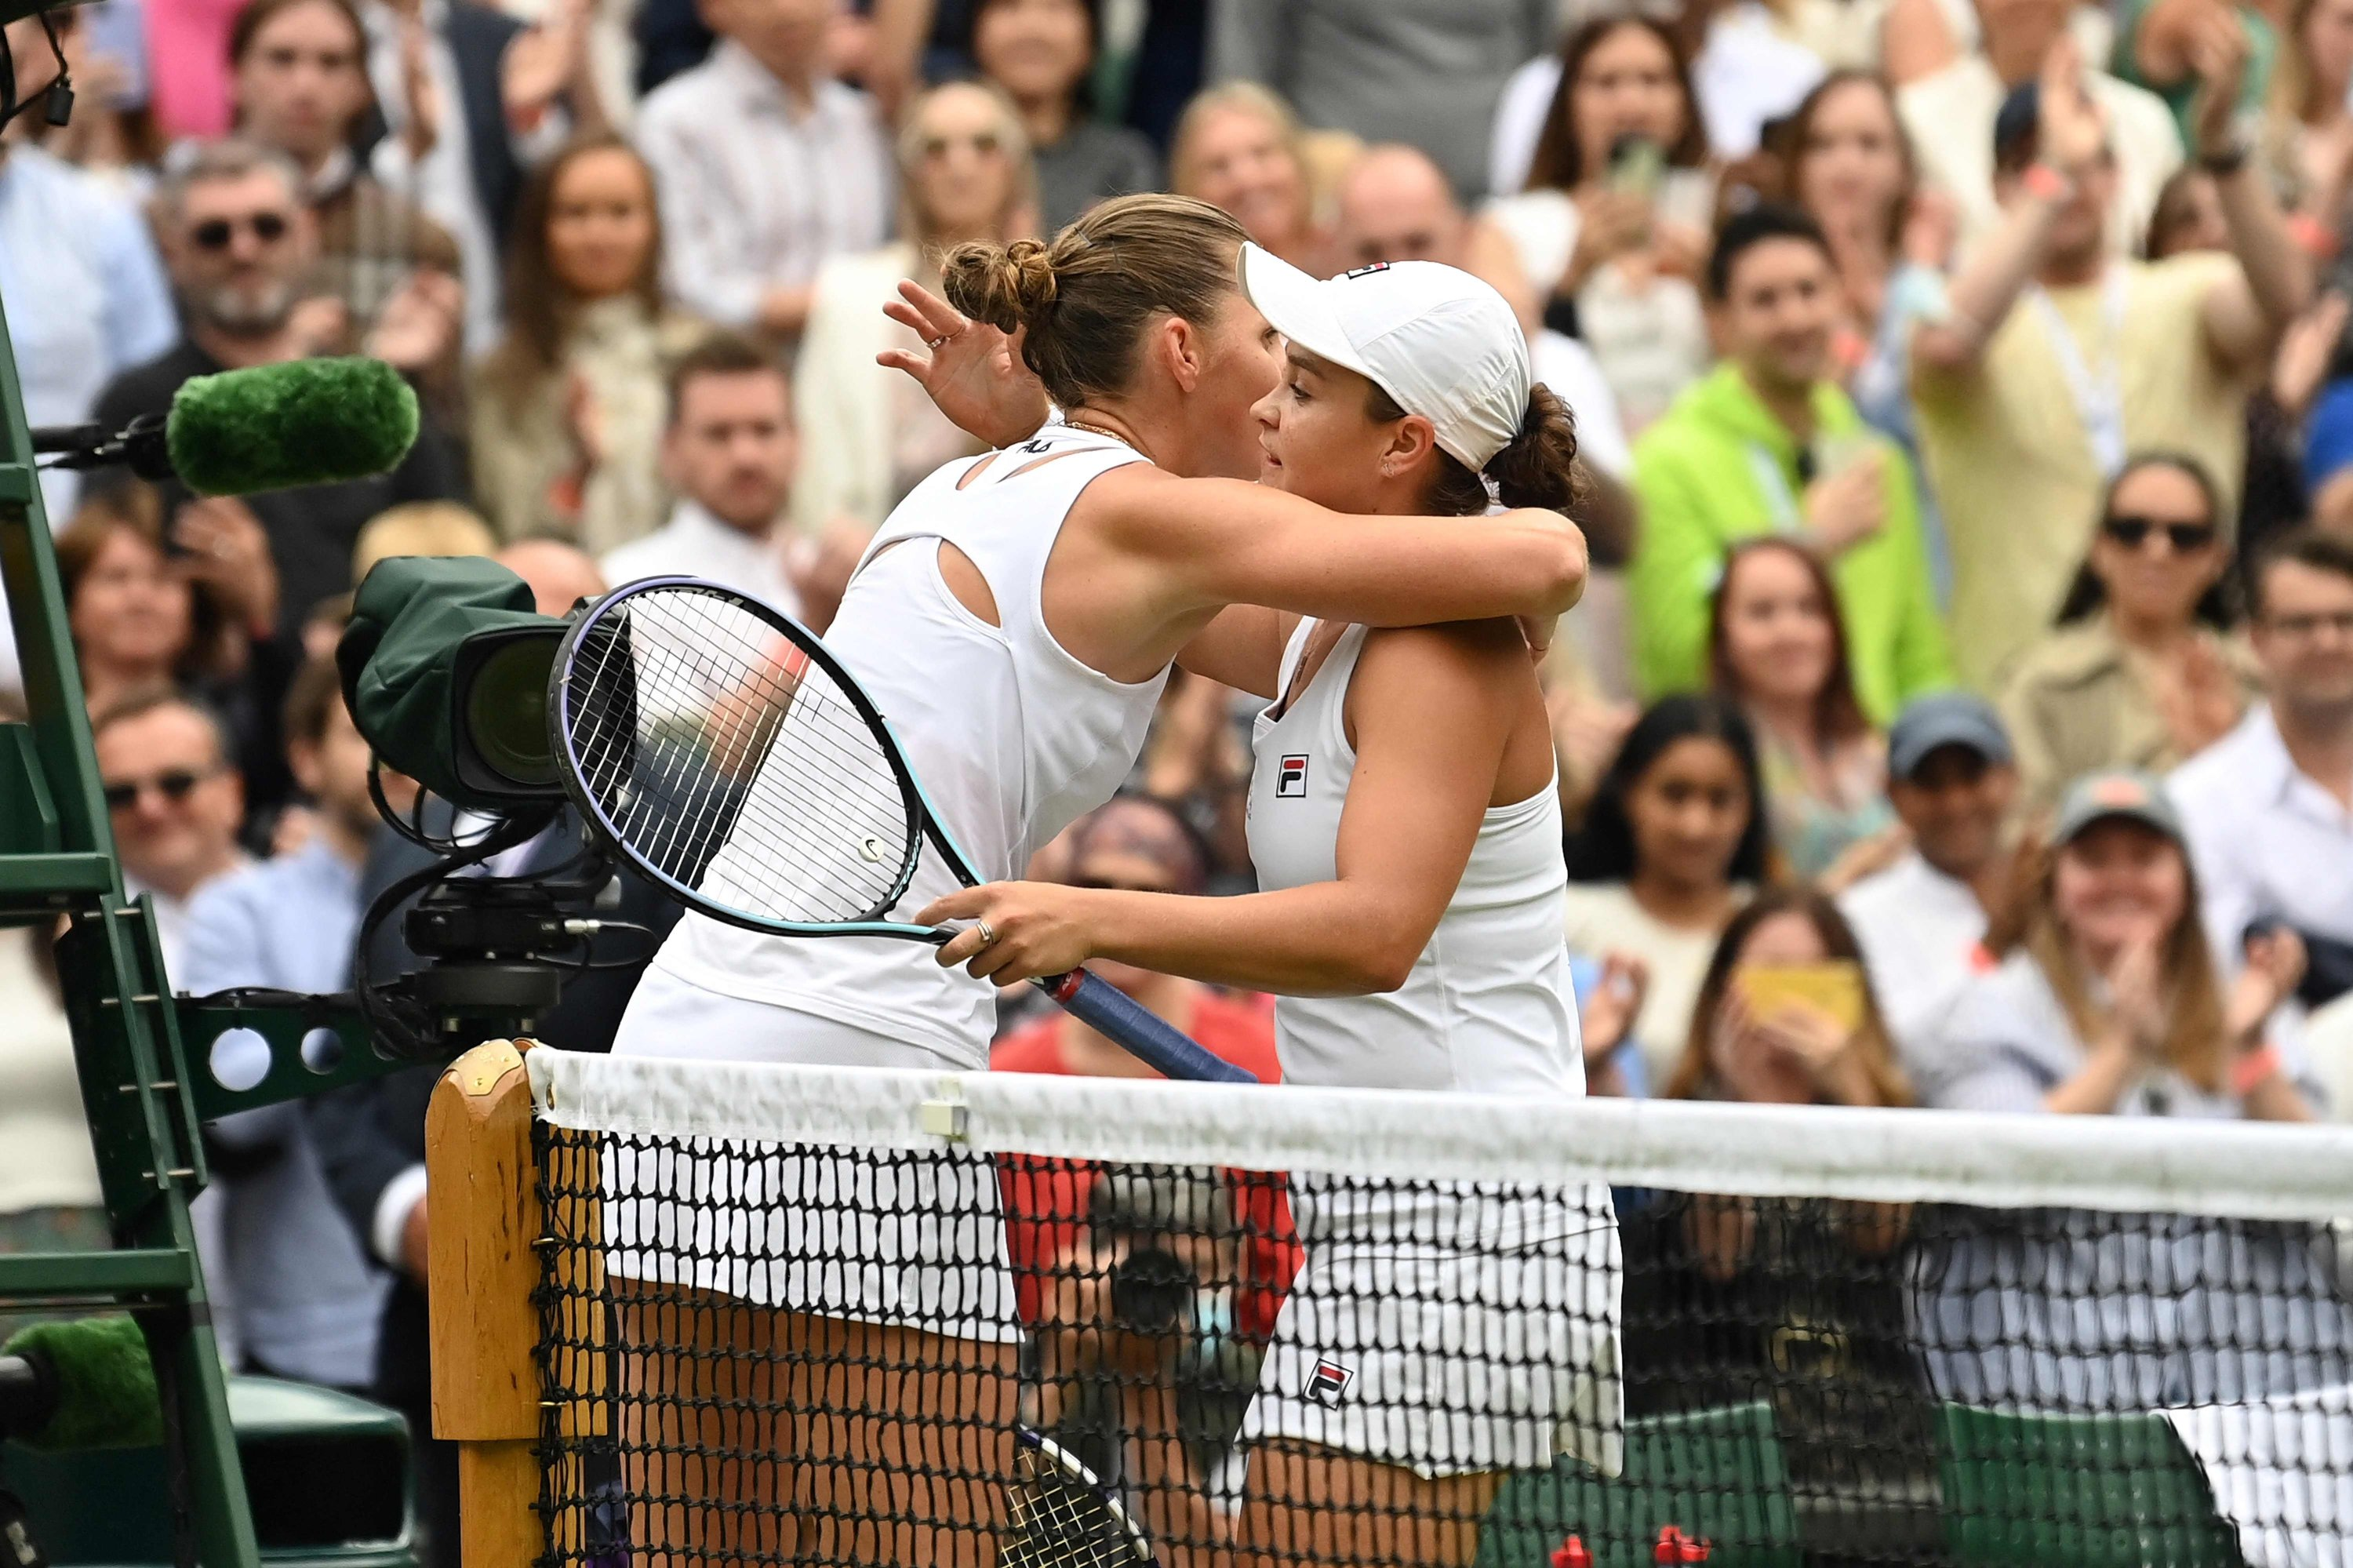 Australia's Ashleigh Barty (R) embraces Czech Republic's Karolina Pliskova after winning their women's singles final match on the 12th day of the 2021 Wimbledon Championships at the All England Tennis Club in Wimbledon, southwest London, on July 10, 2021. (AFP Photo)